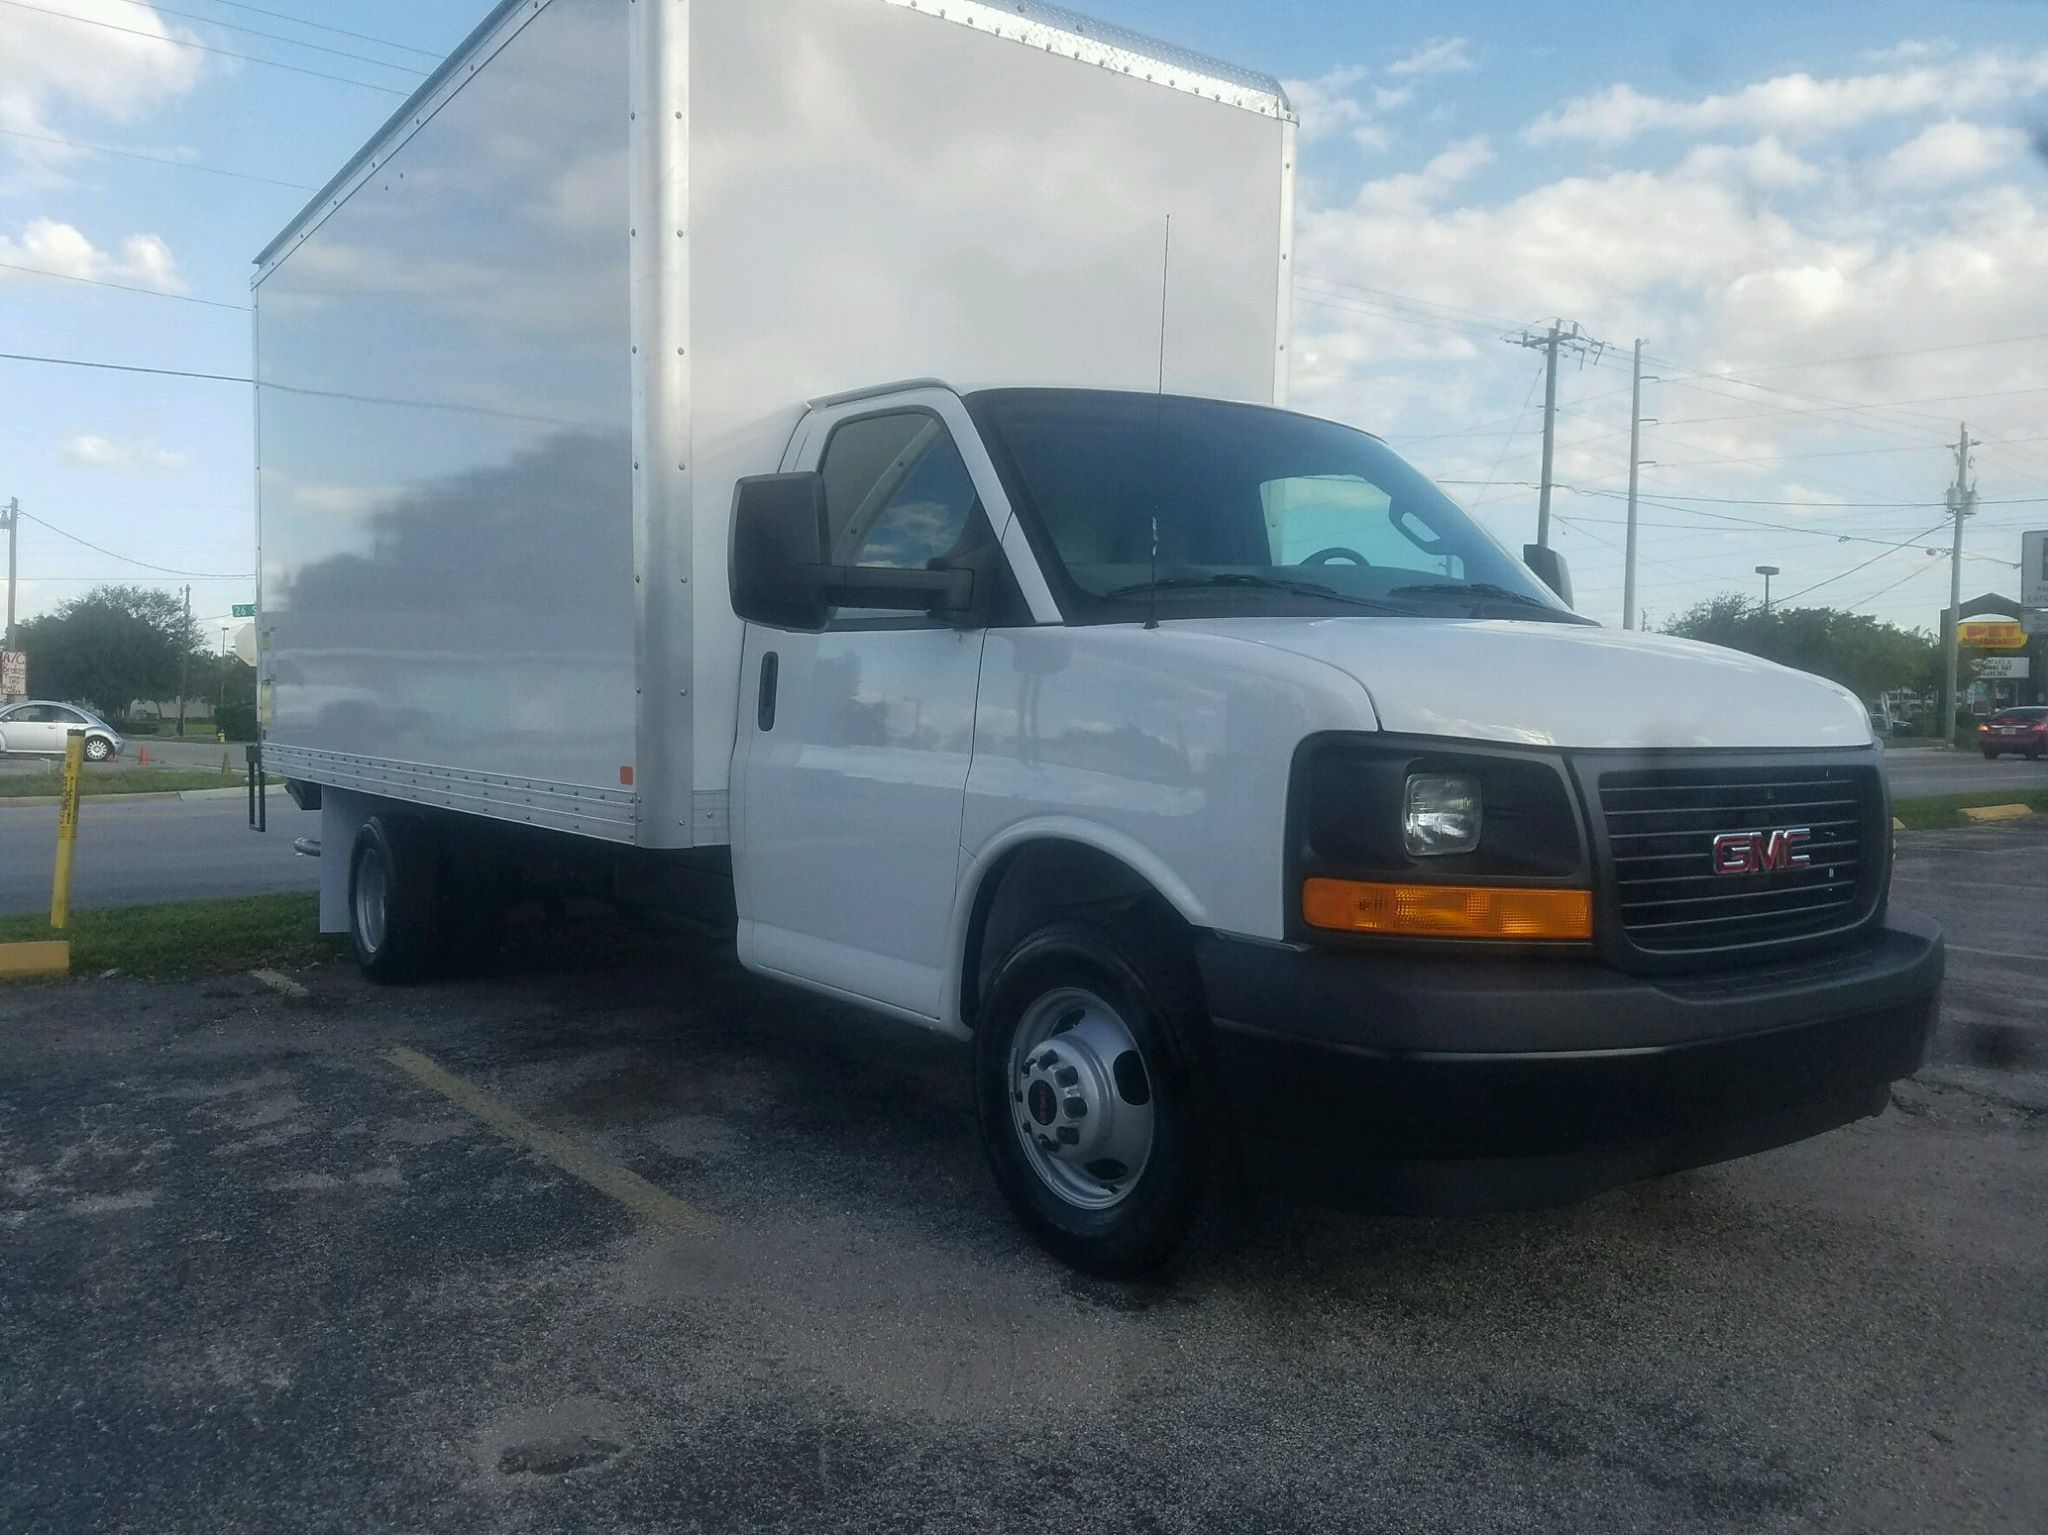 Artic Air Services Inc: New Box Truck